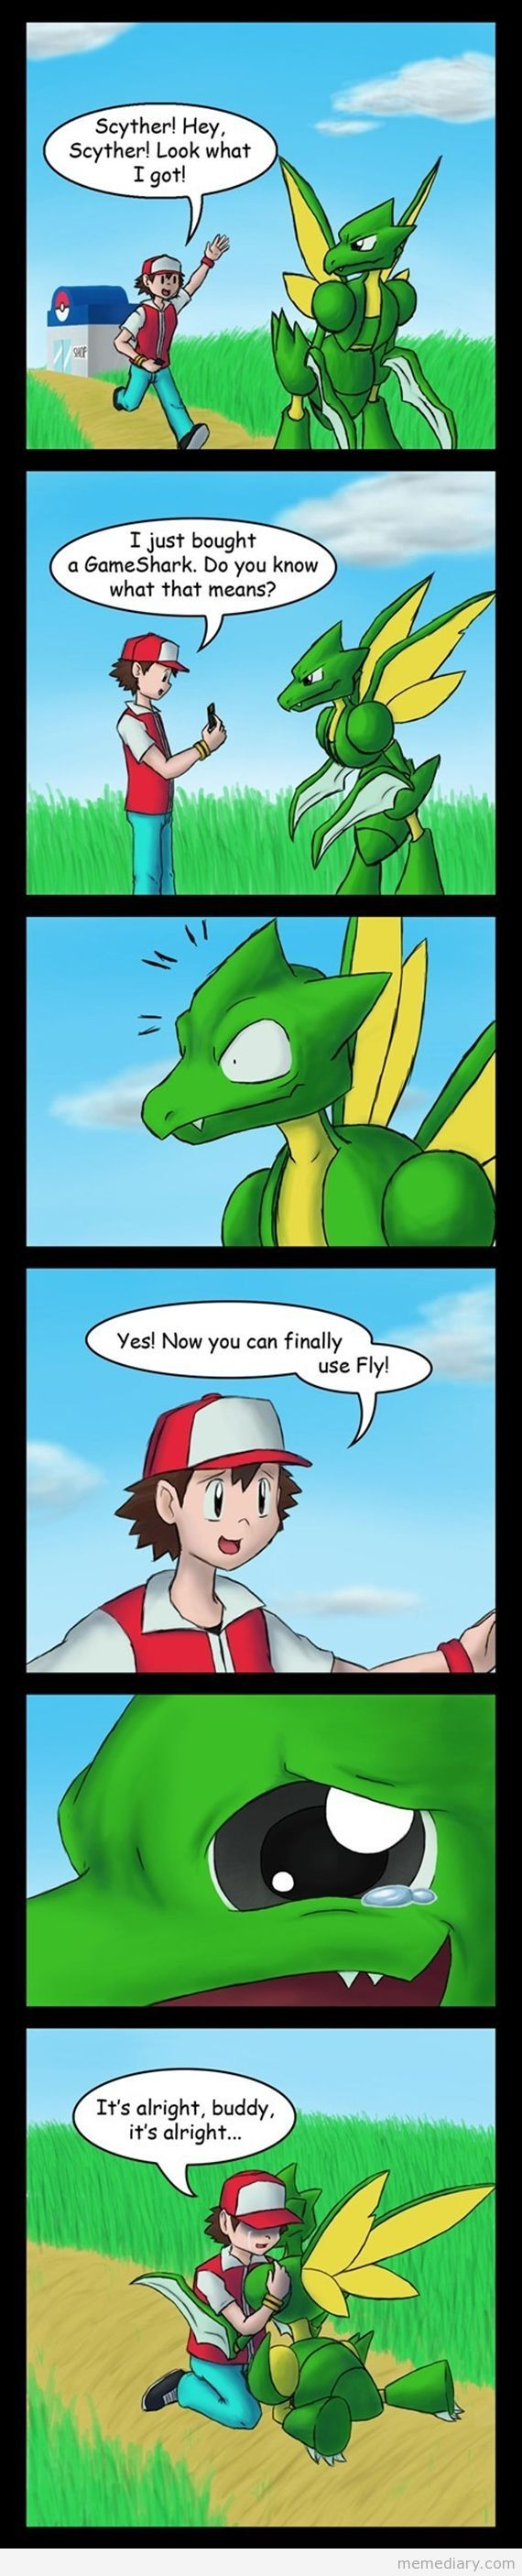 Scyther's dream comes true #scyther #cartoon #meme #funnymeme